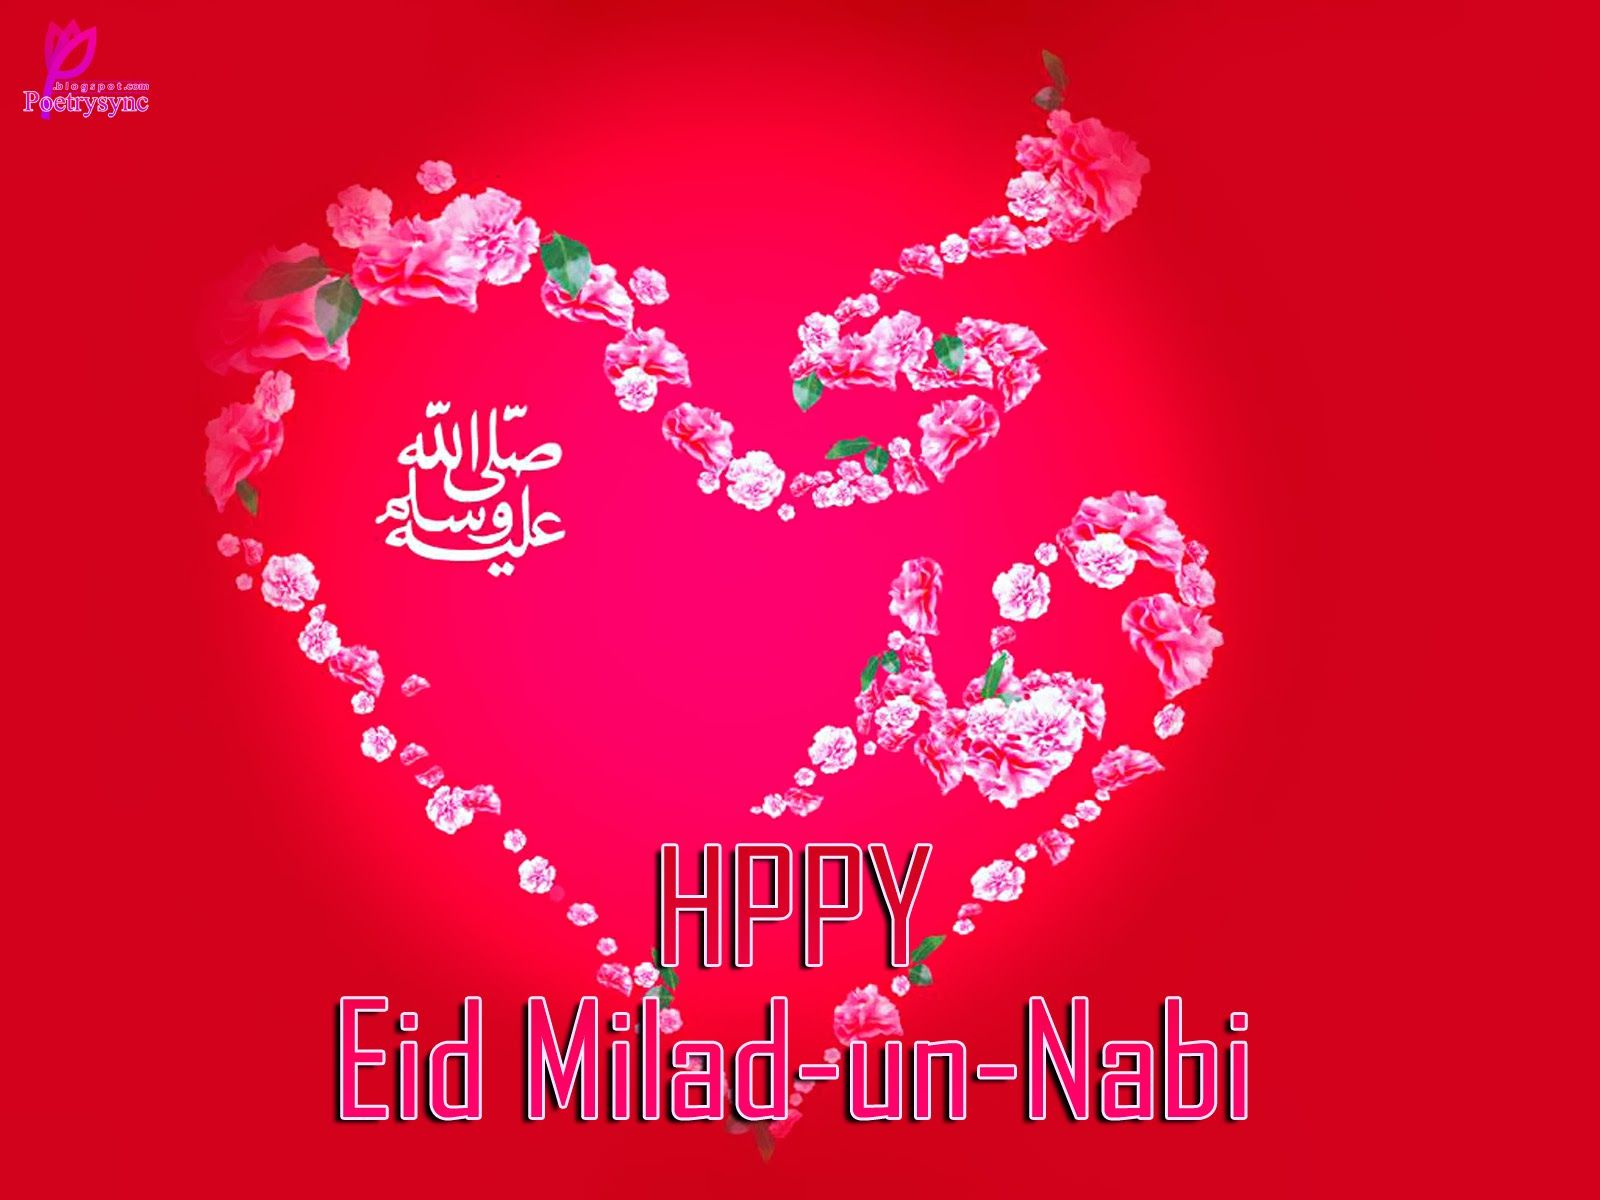 Happy eid milad un nabi wishes picture wallpaper eid milad un happy eid milad un nabi wishes picture wallpaper kristyandbryce Choice Image